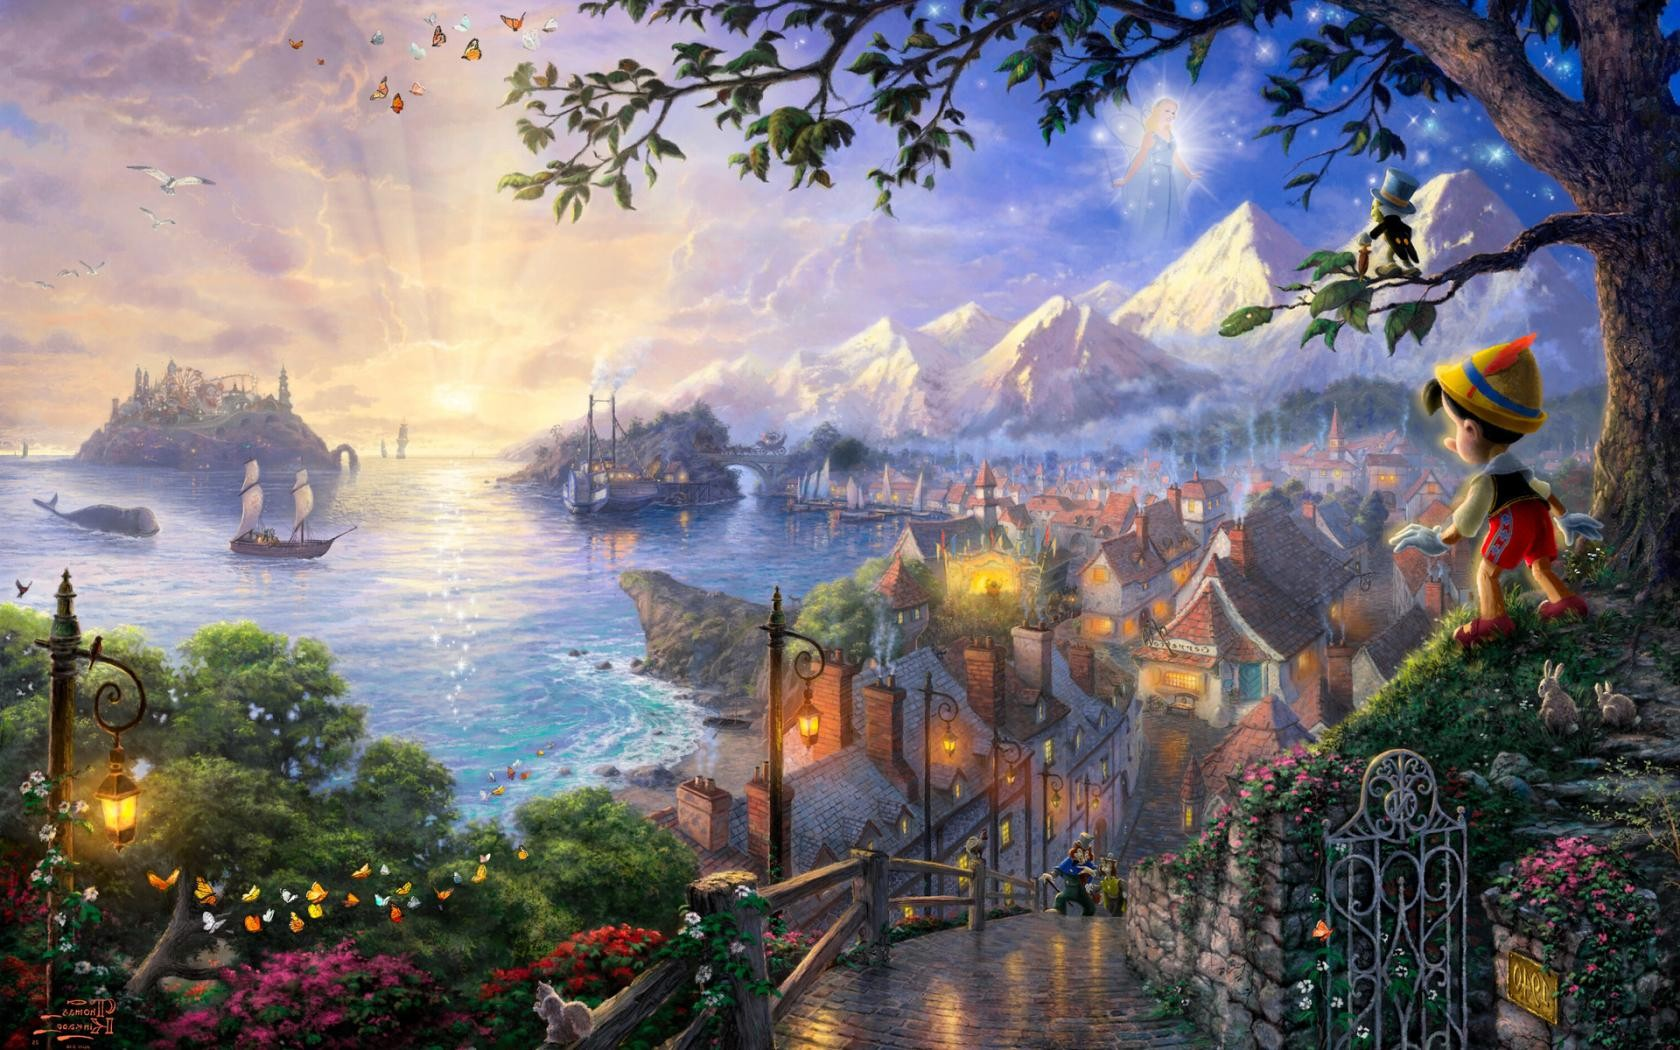 Pinocchio Walt Disney hd wallpaper background HD Wallpapers 1680x1050